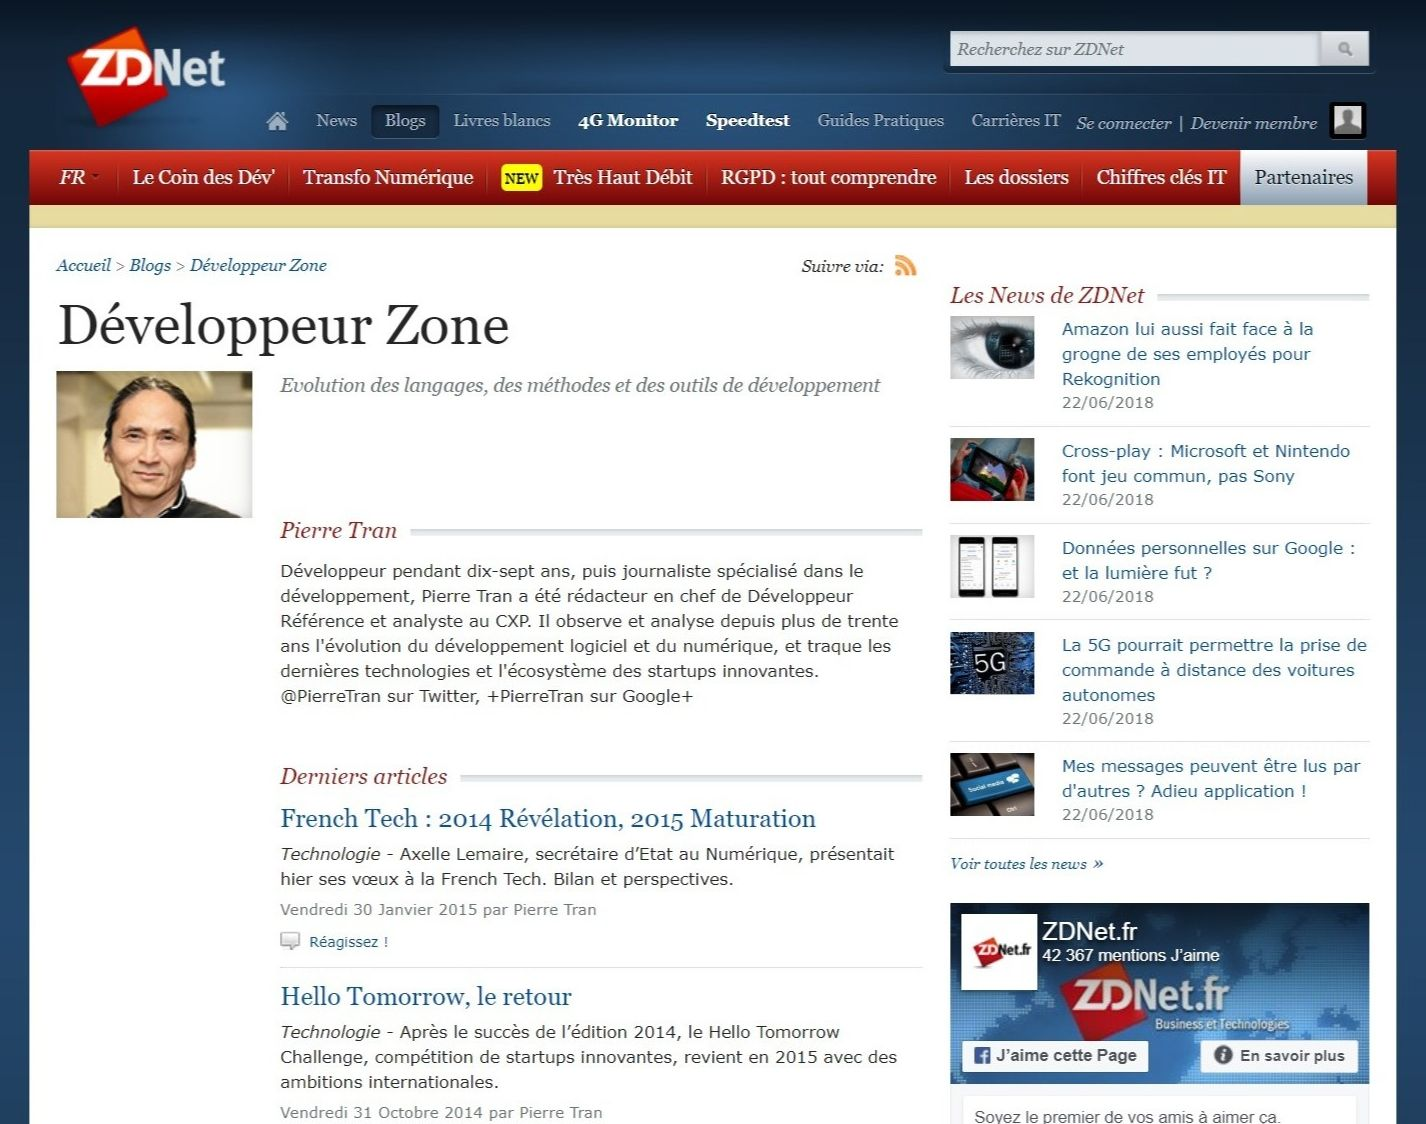 Zdnet.fr developpeur zone  28r 29